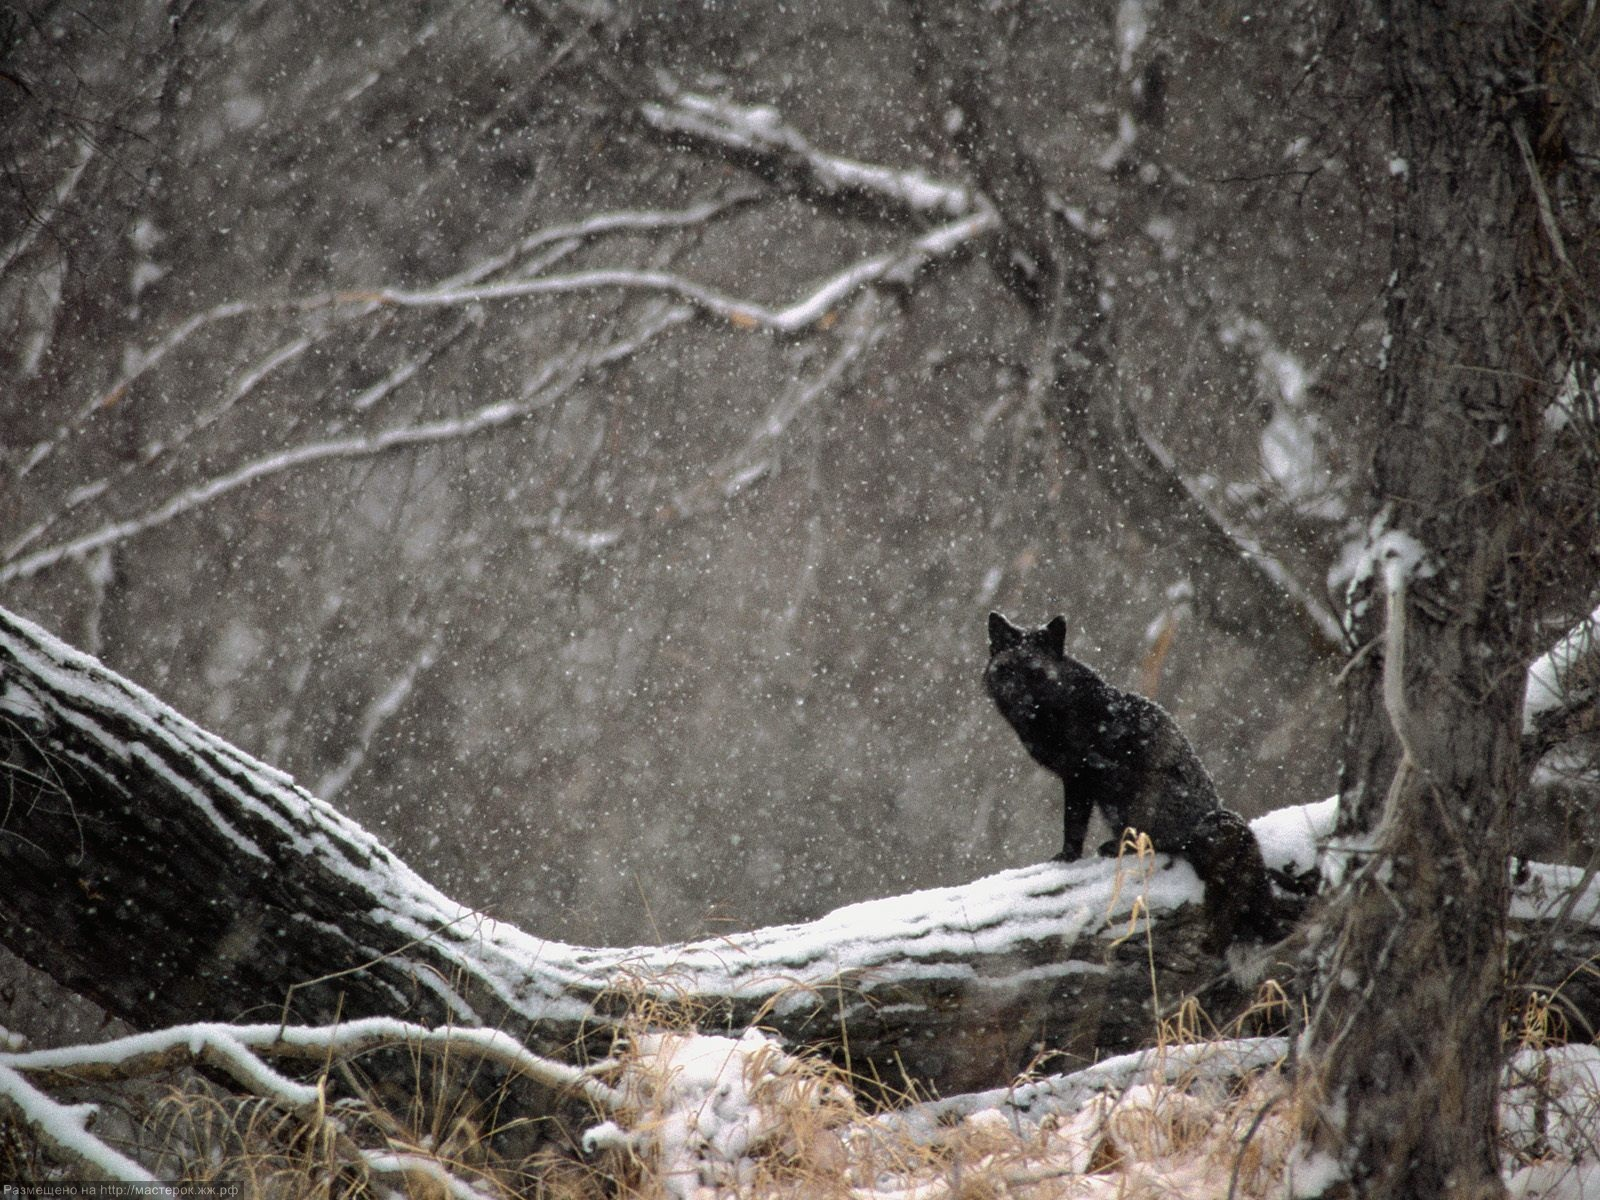 IN-THE-SEASONAL-FOREST-SNOW-STORM-A-BLACK-FOX